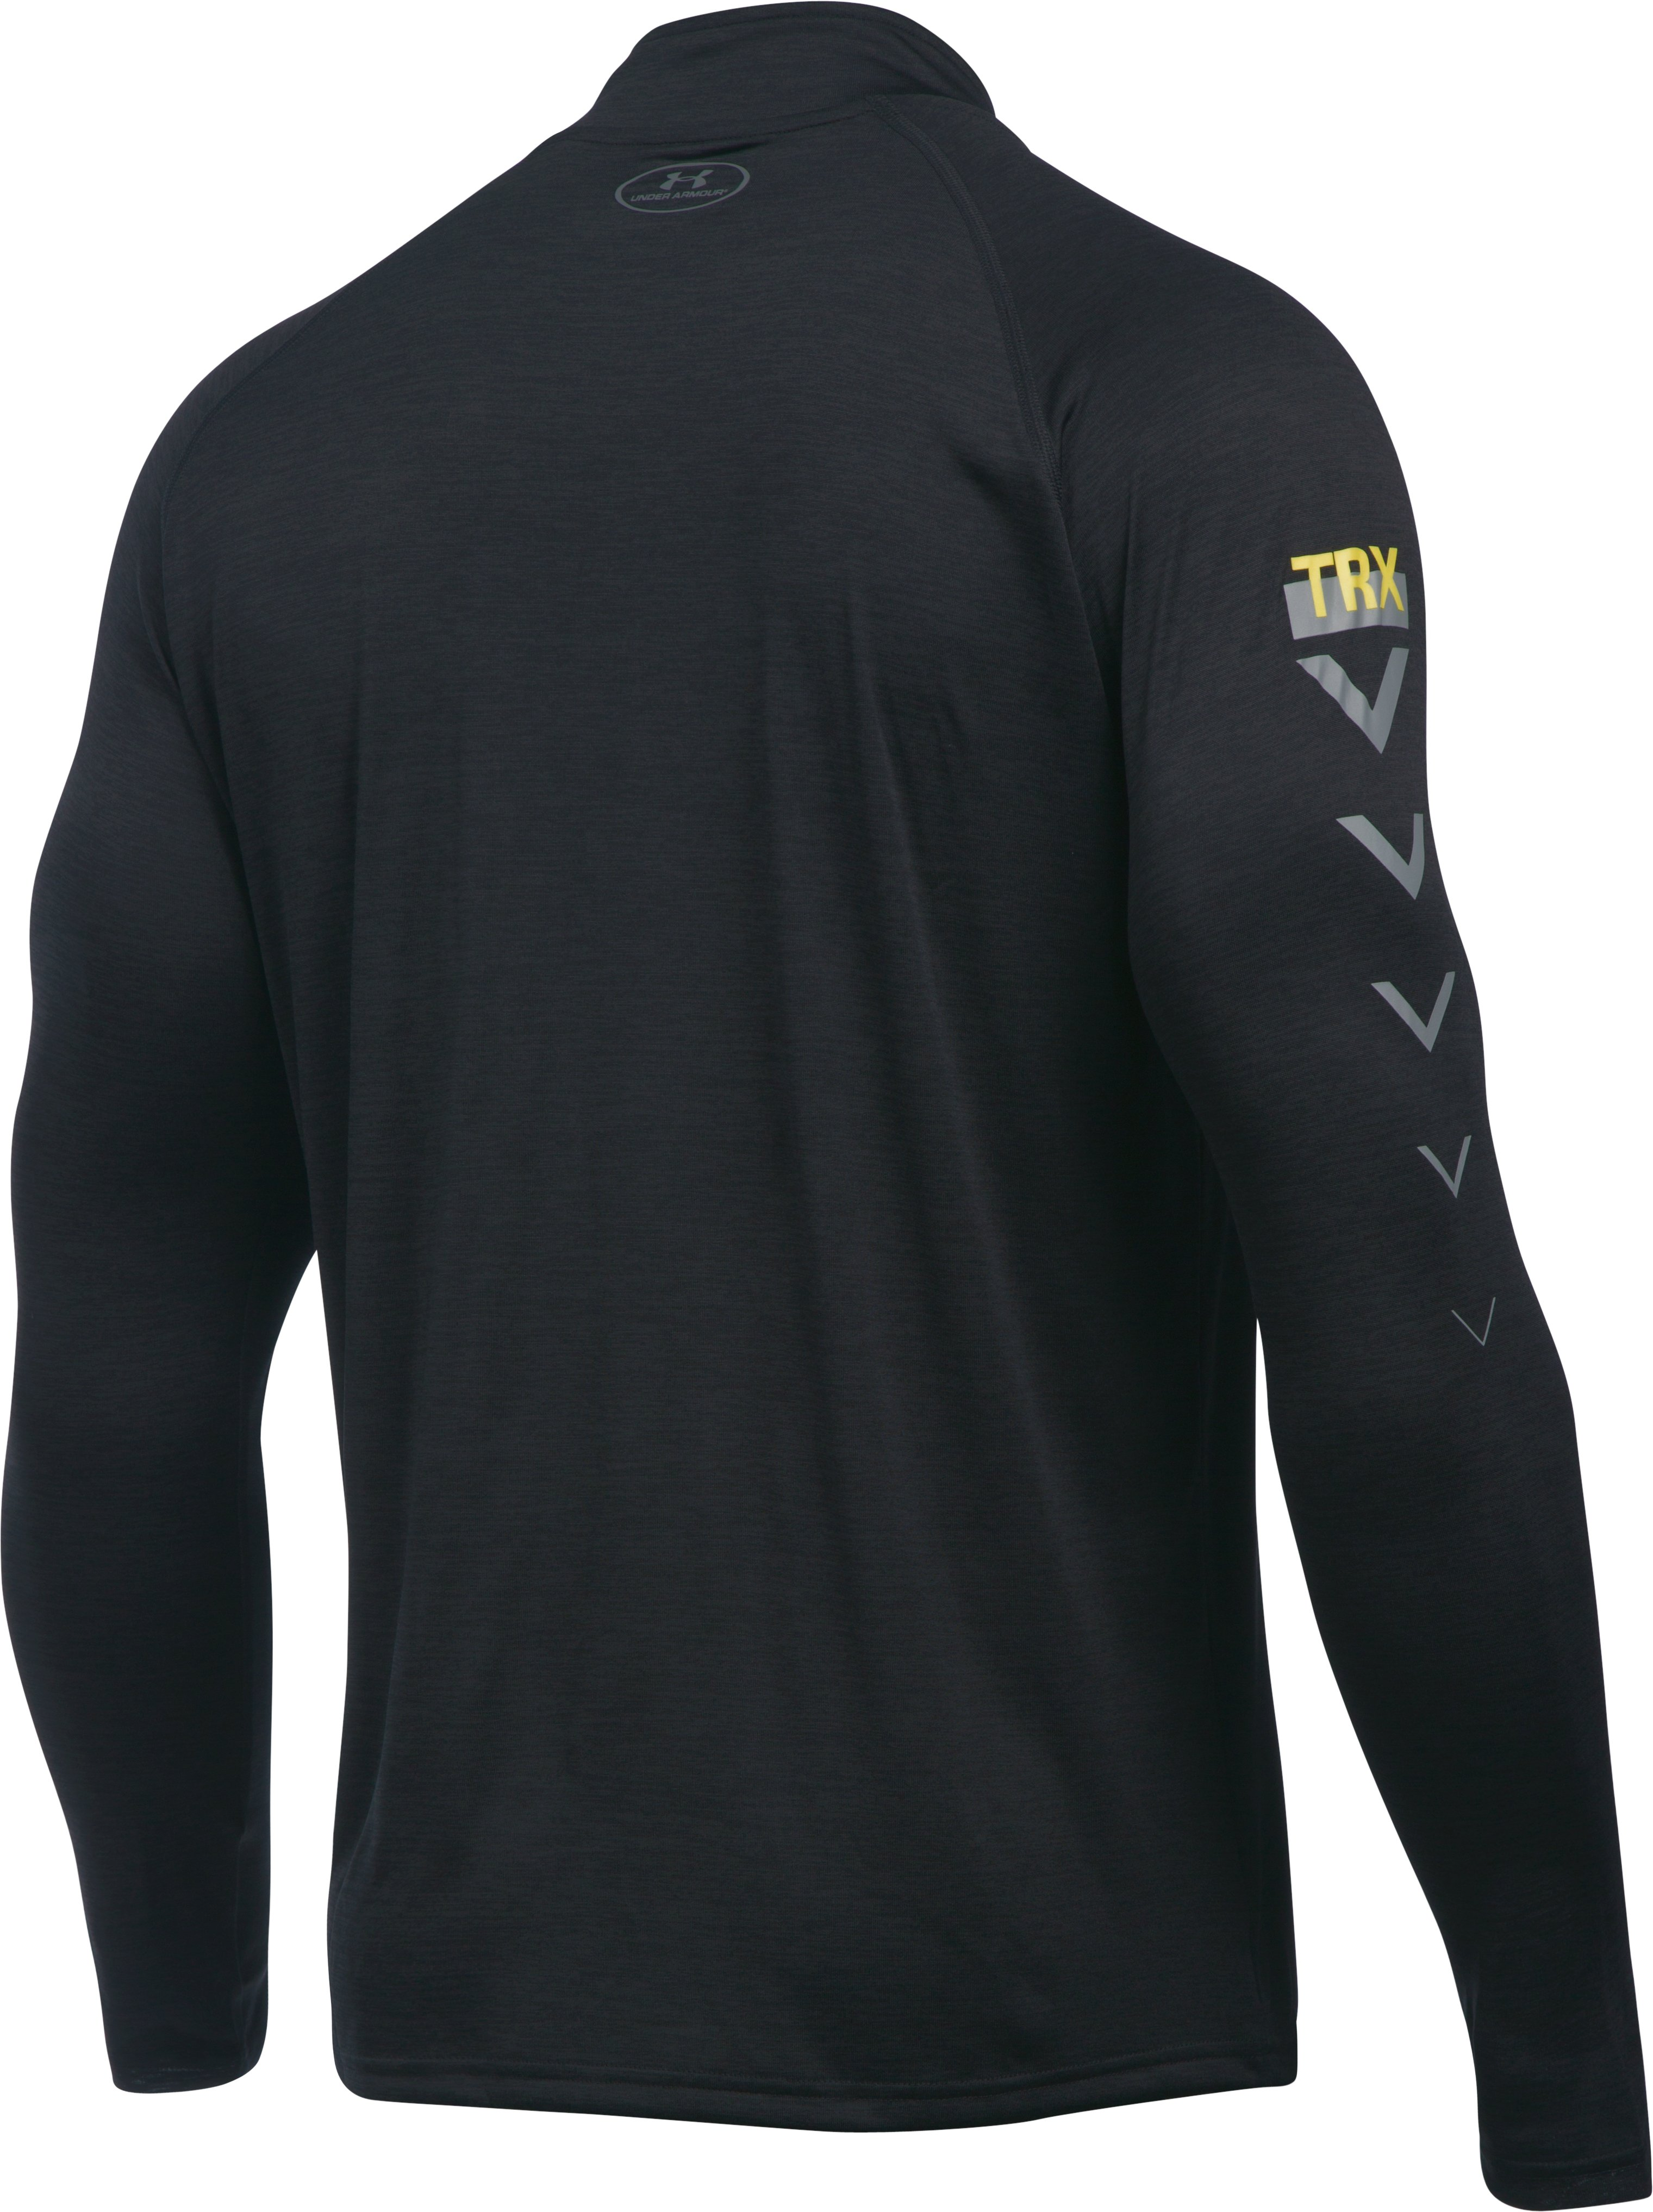 Men's TRX UA Tech™ ¼ Zip, Black , undefined